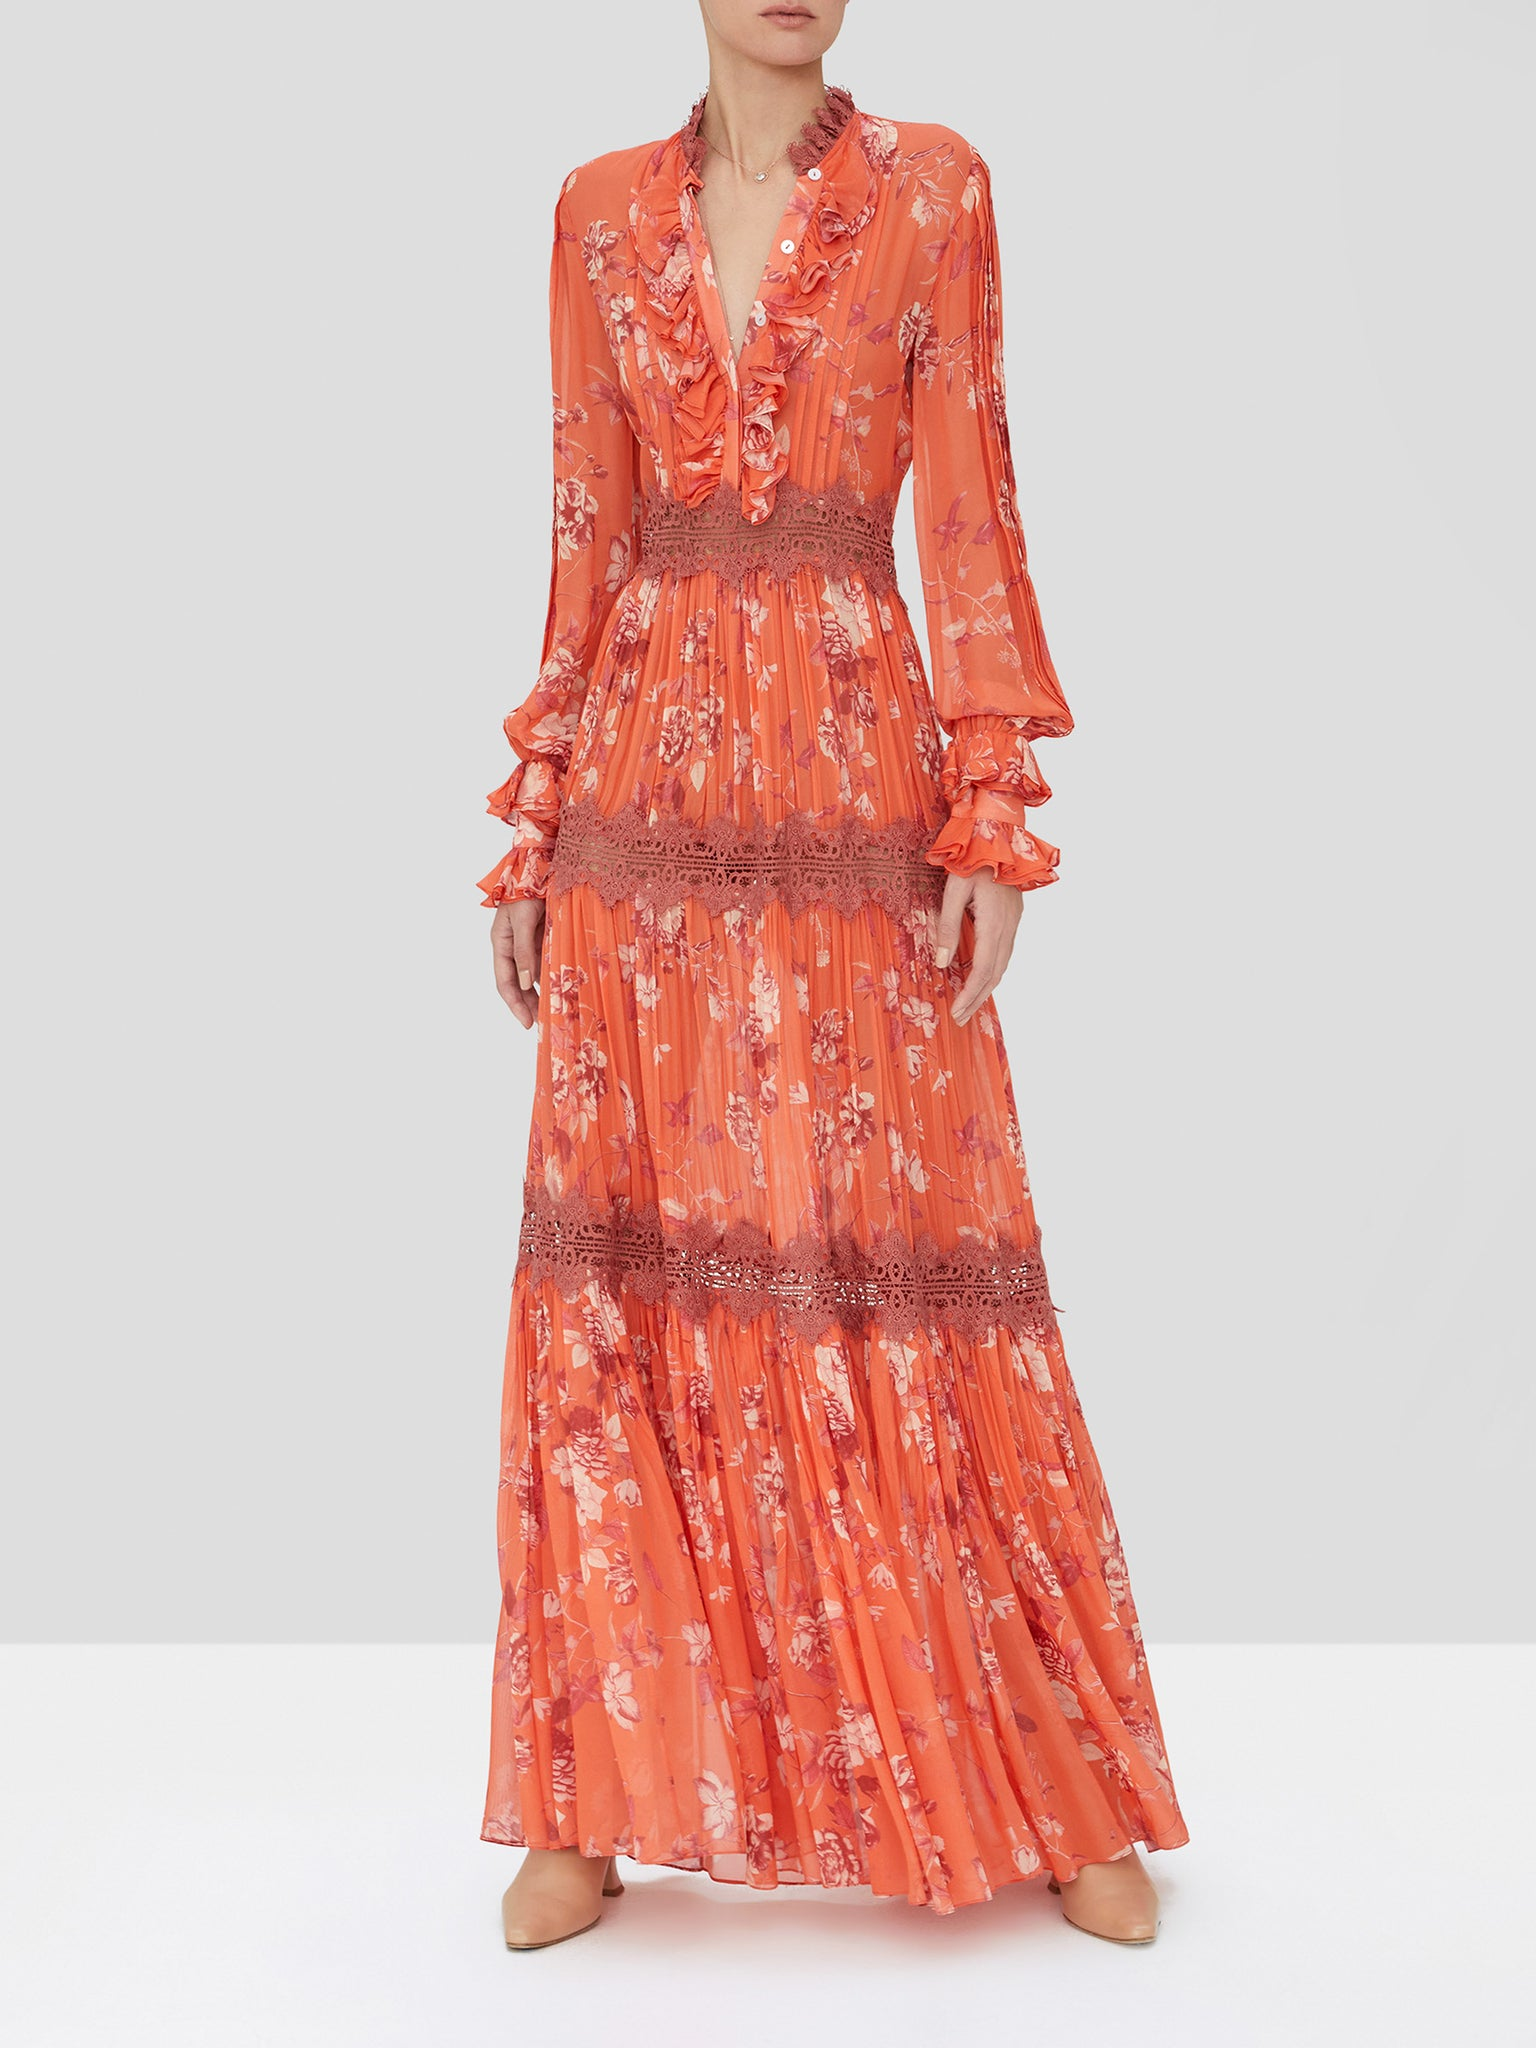 Alexis Armada maxi dress in coral.